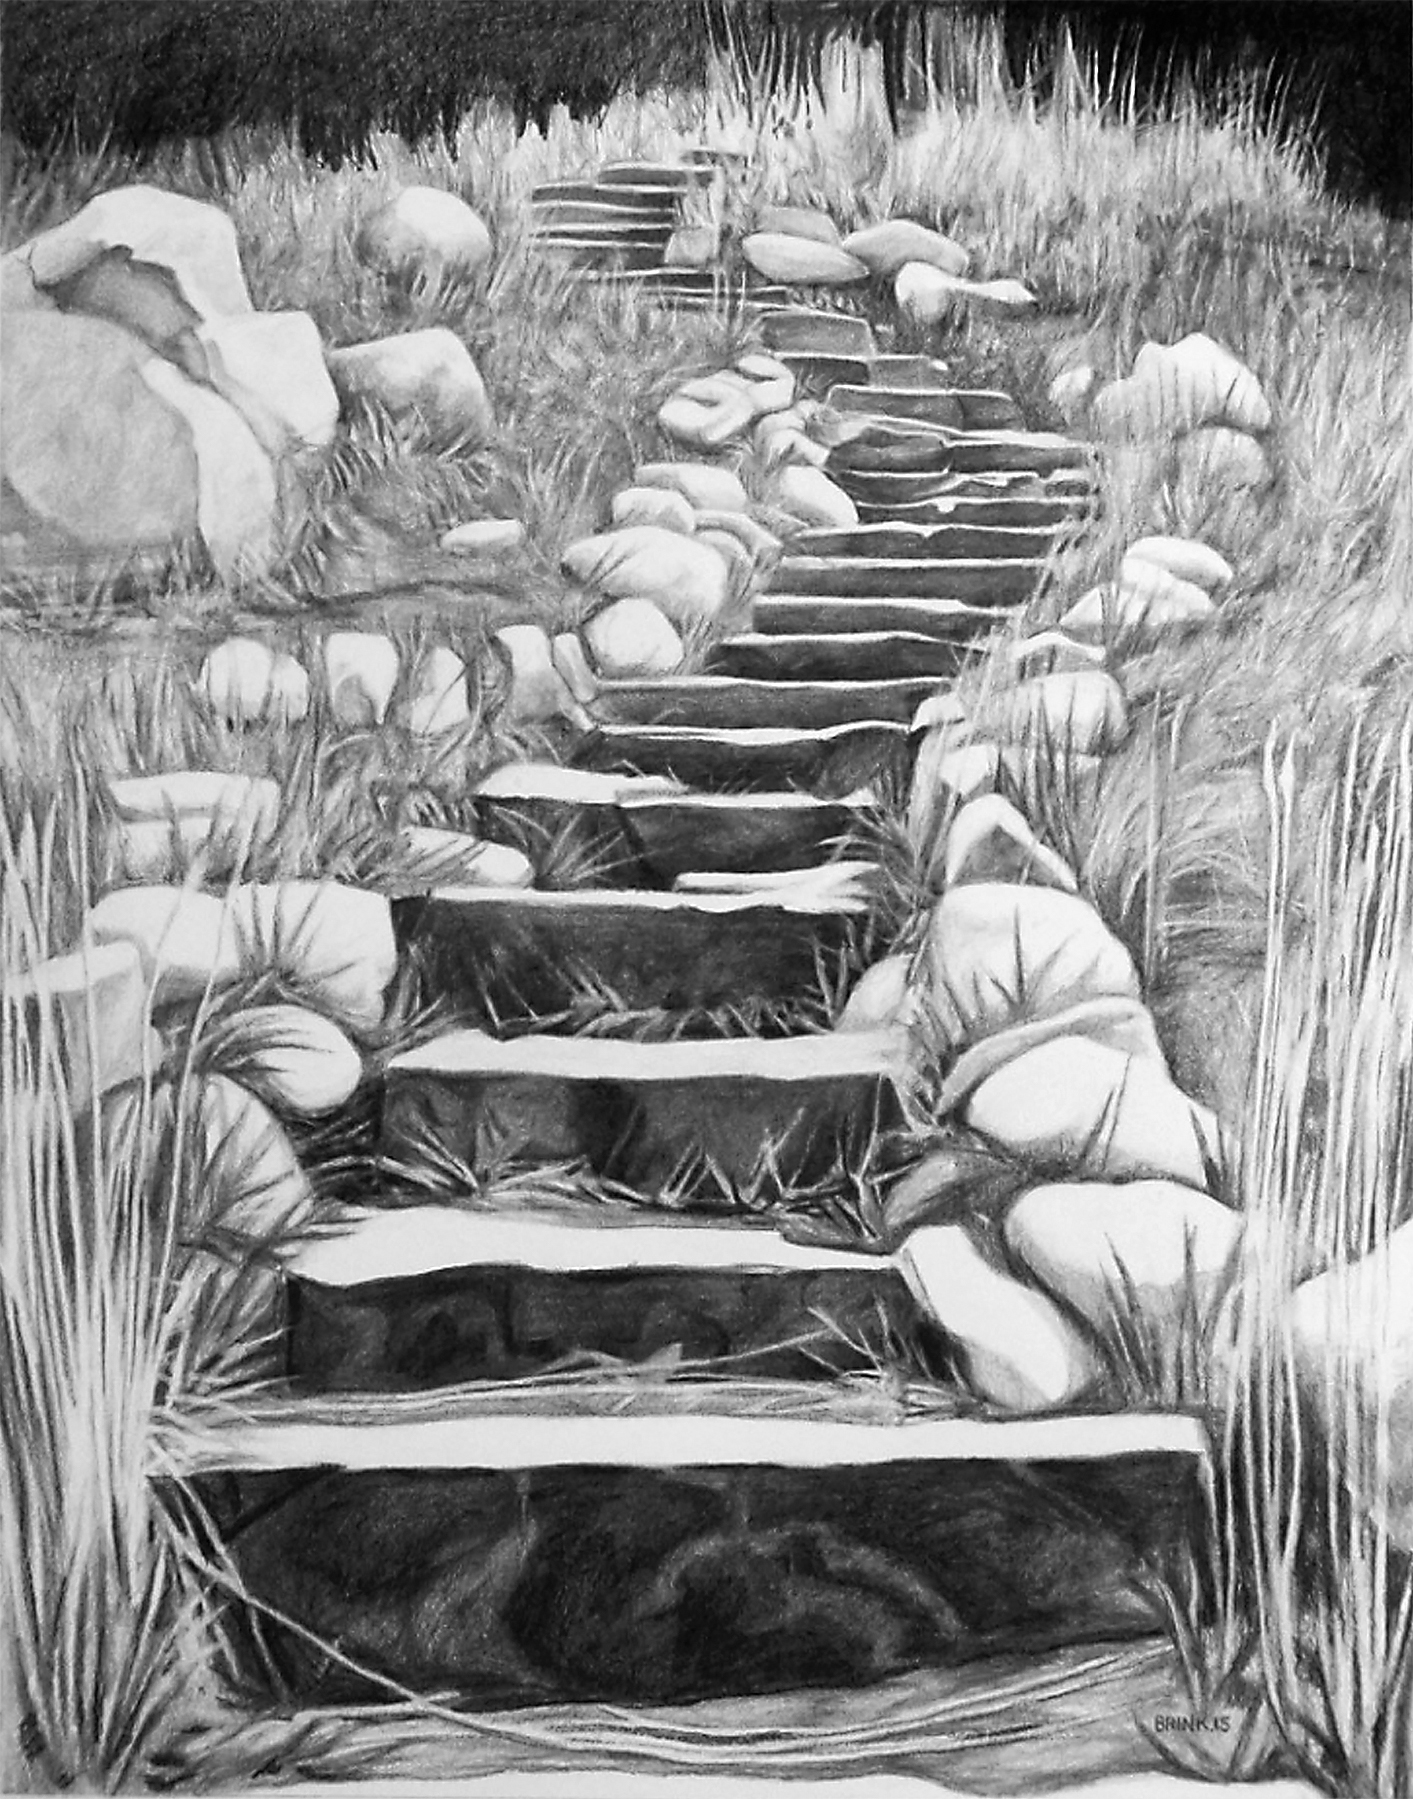 The Draw 3 - Toward Bear Canyon, 38 x 30 in, charcoal + conté on paper, 2015